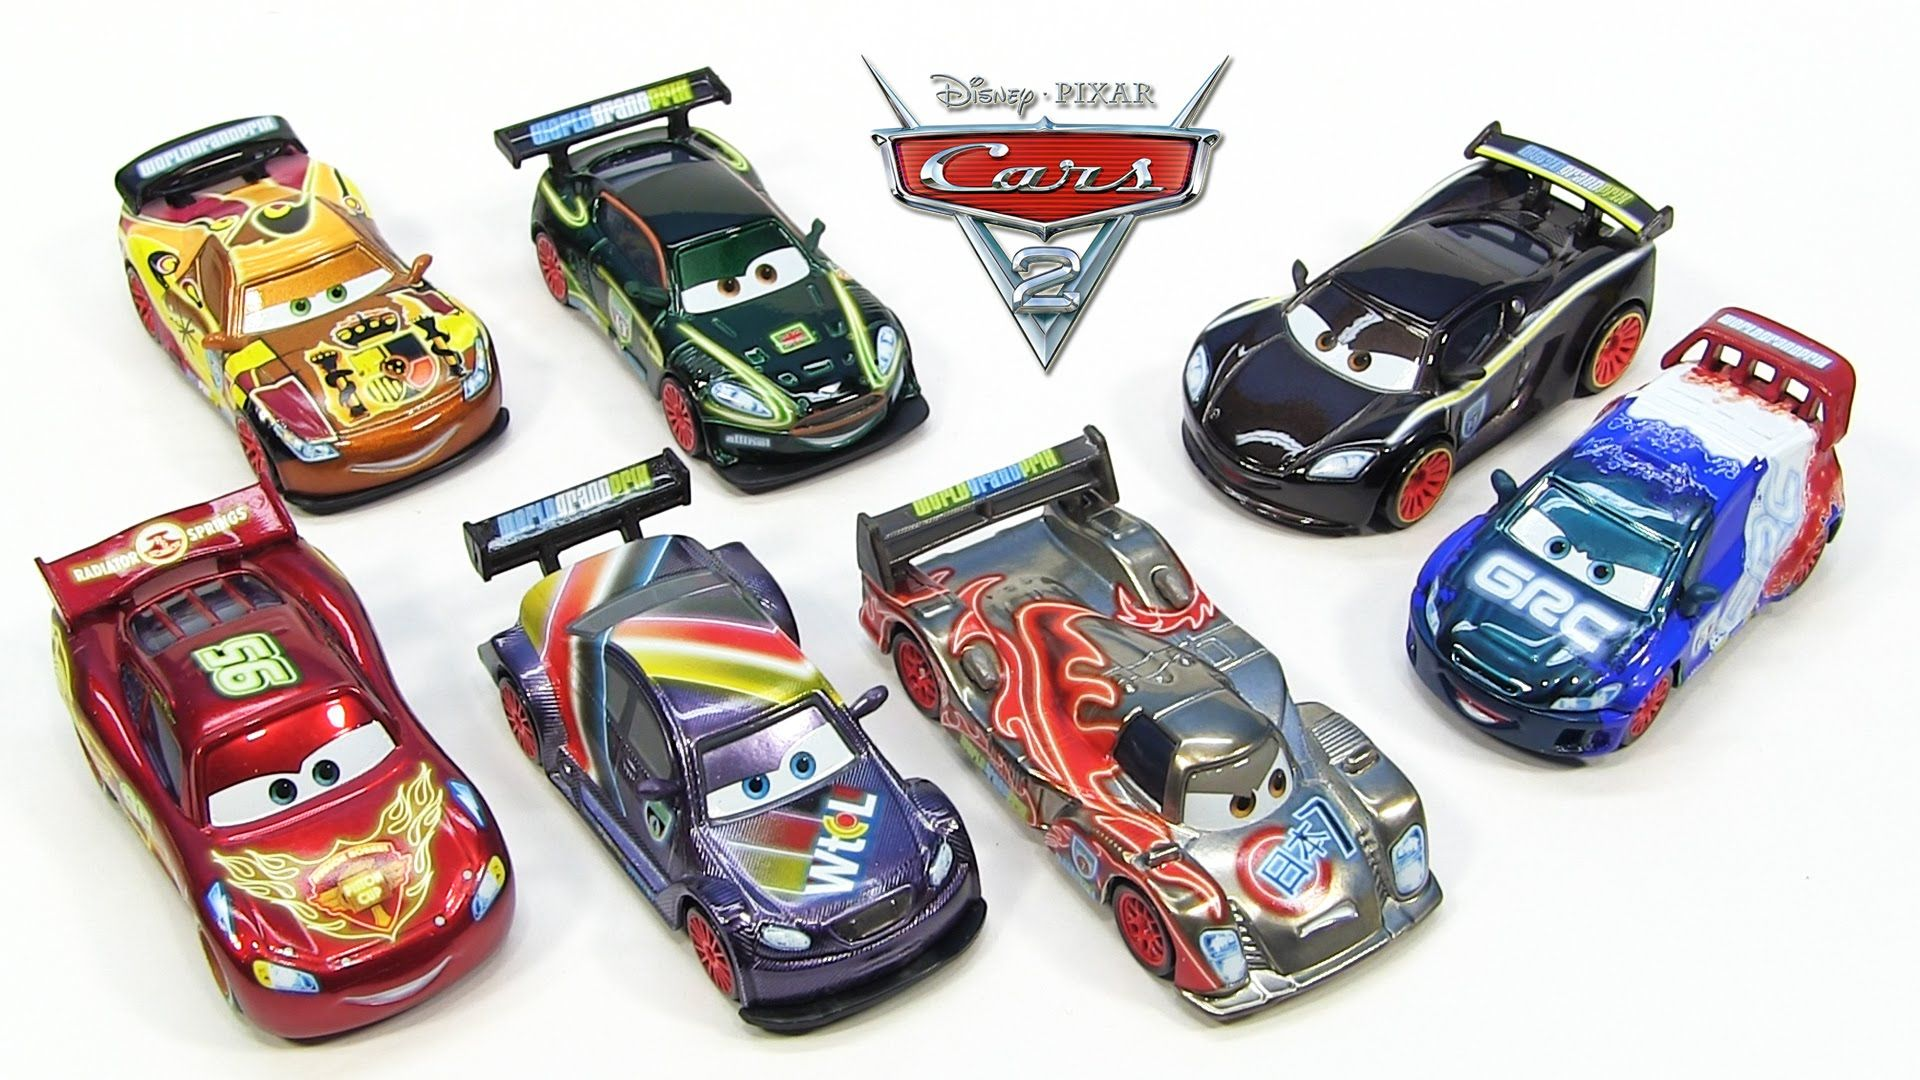 Cars Pixar Lewis Hamilton Disney Cars 2 Neon Racers Metallic Finish Lightning Mcqueen